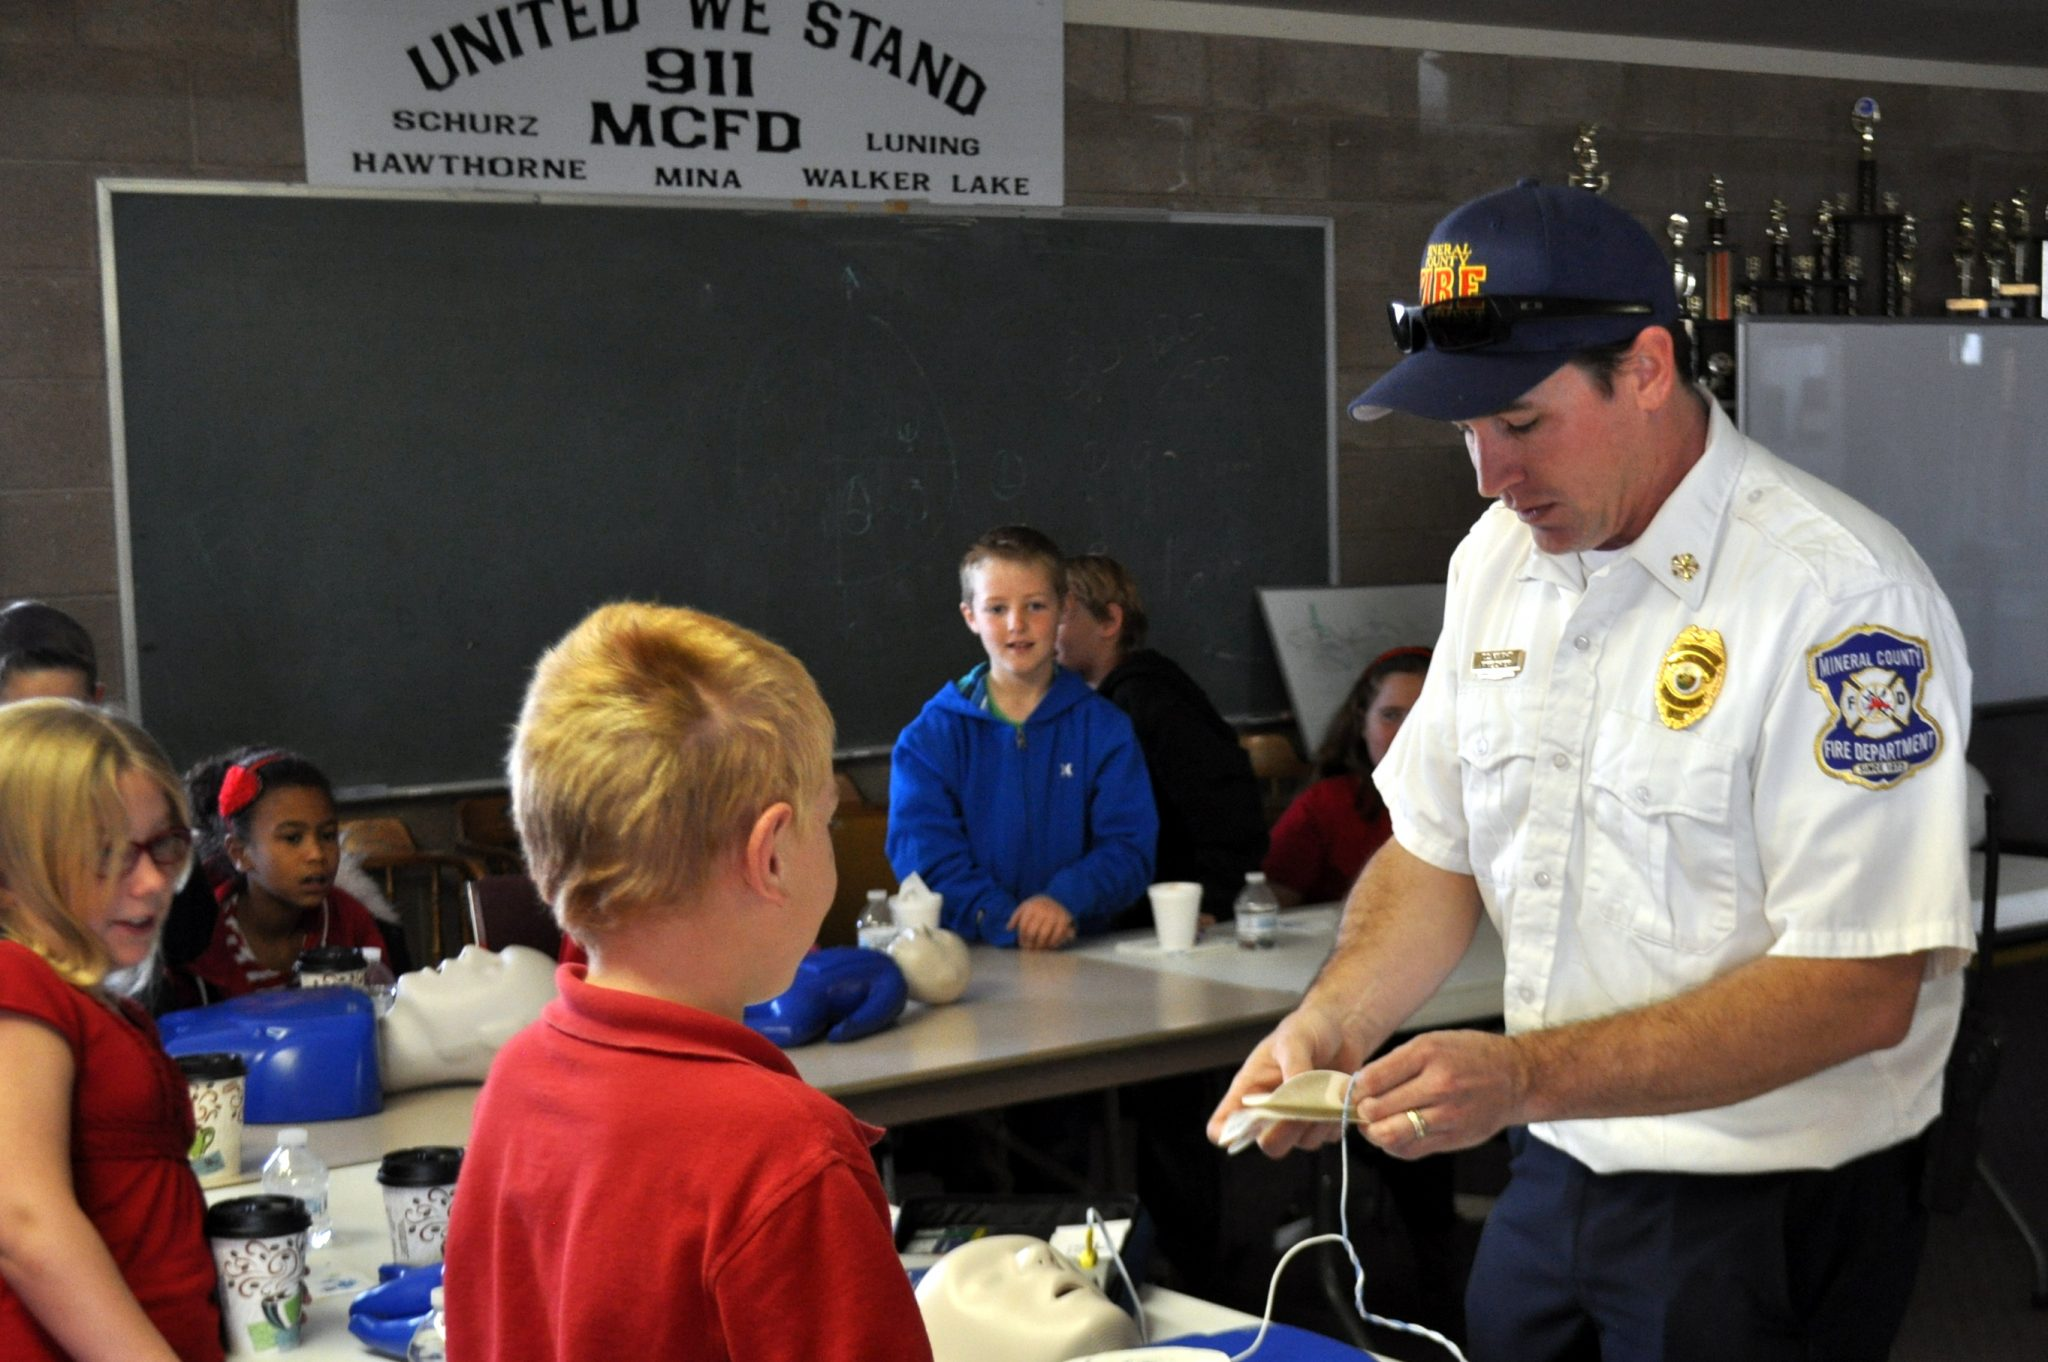 Local students learn skills from emergency leaders